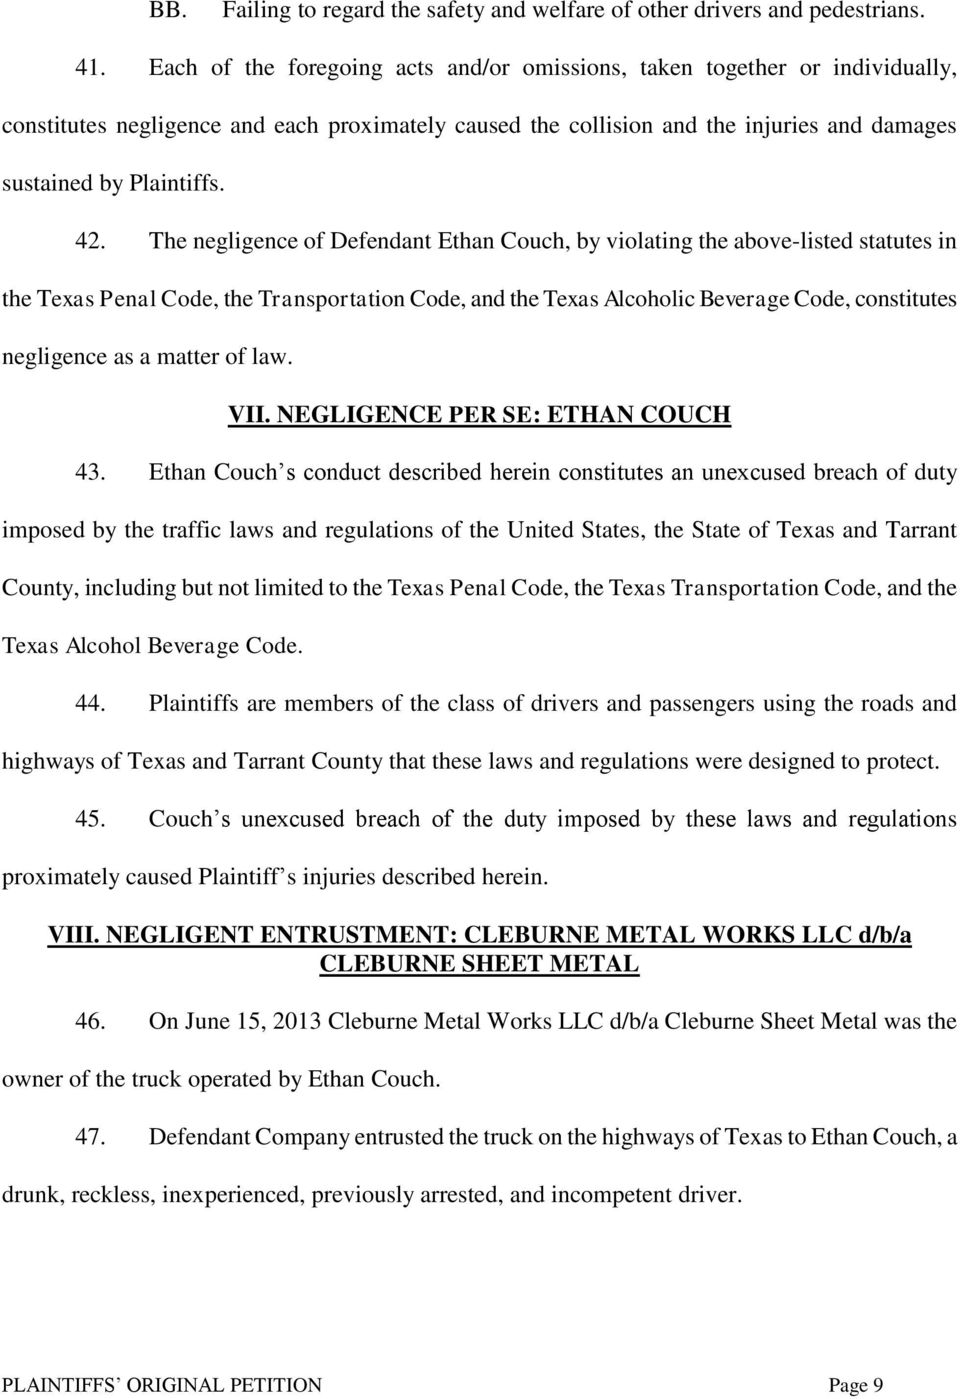 The negligence of Defendant Ethan Couch, by violating the above-listed statutes in the Texas Penal Code, the Transportation Code, and the Texas Alcoholic Beverage Code, constitutes negligence as a